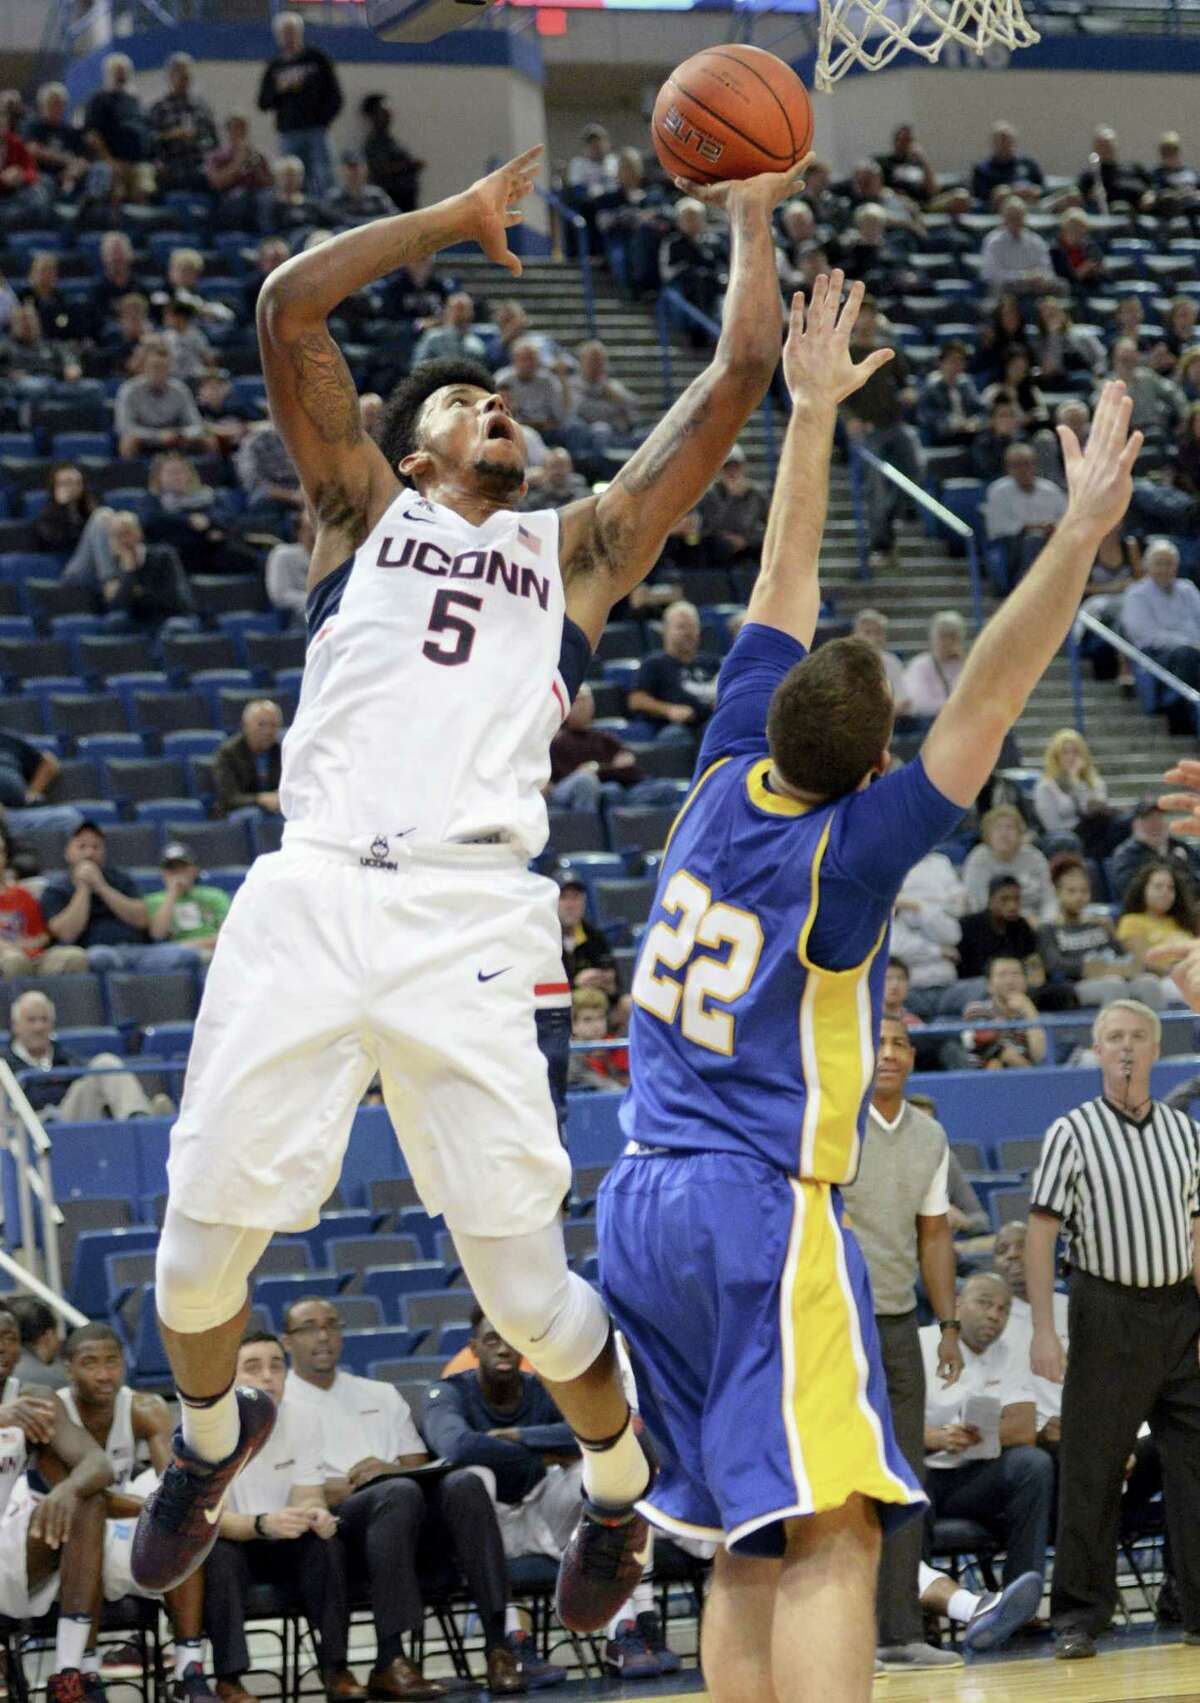 UConn's Vance Jackson shoots over New Haven's Tommy Hunt during the second half on Sunday.